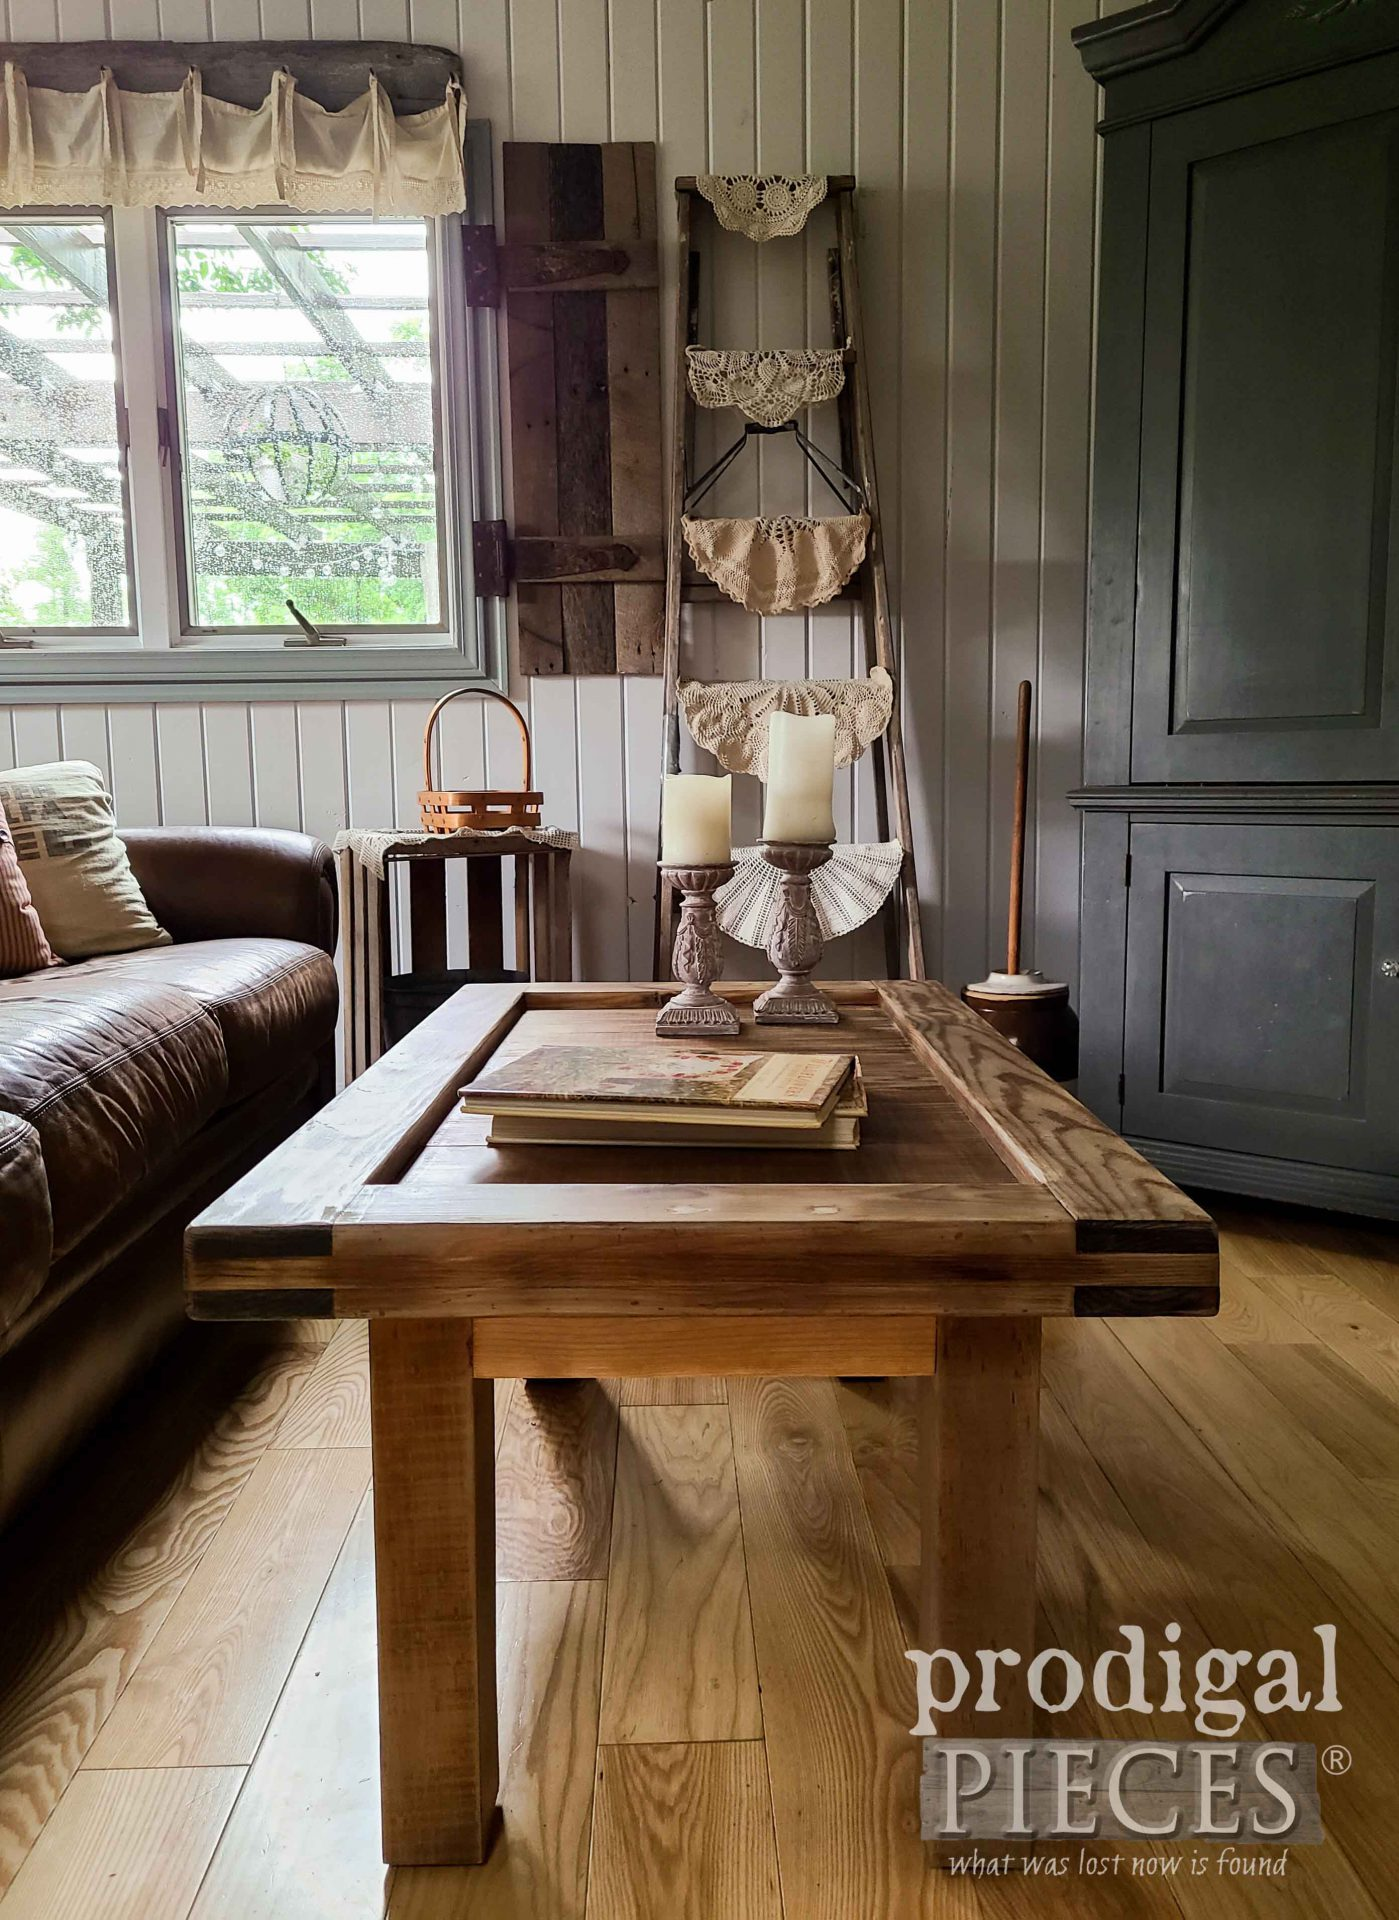 Rustic Farmhouse Chic Living Room with Farmhouse Coffee Table by Larissa of Prodigal Pieces | prodigalpieces.com #prodigalpieces #diy #farmhouse #home #homedecor #handmade